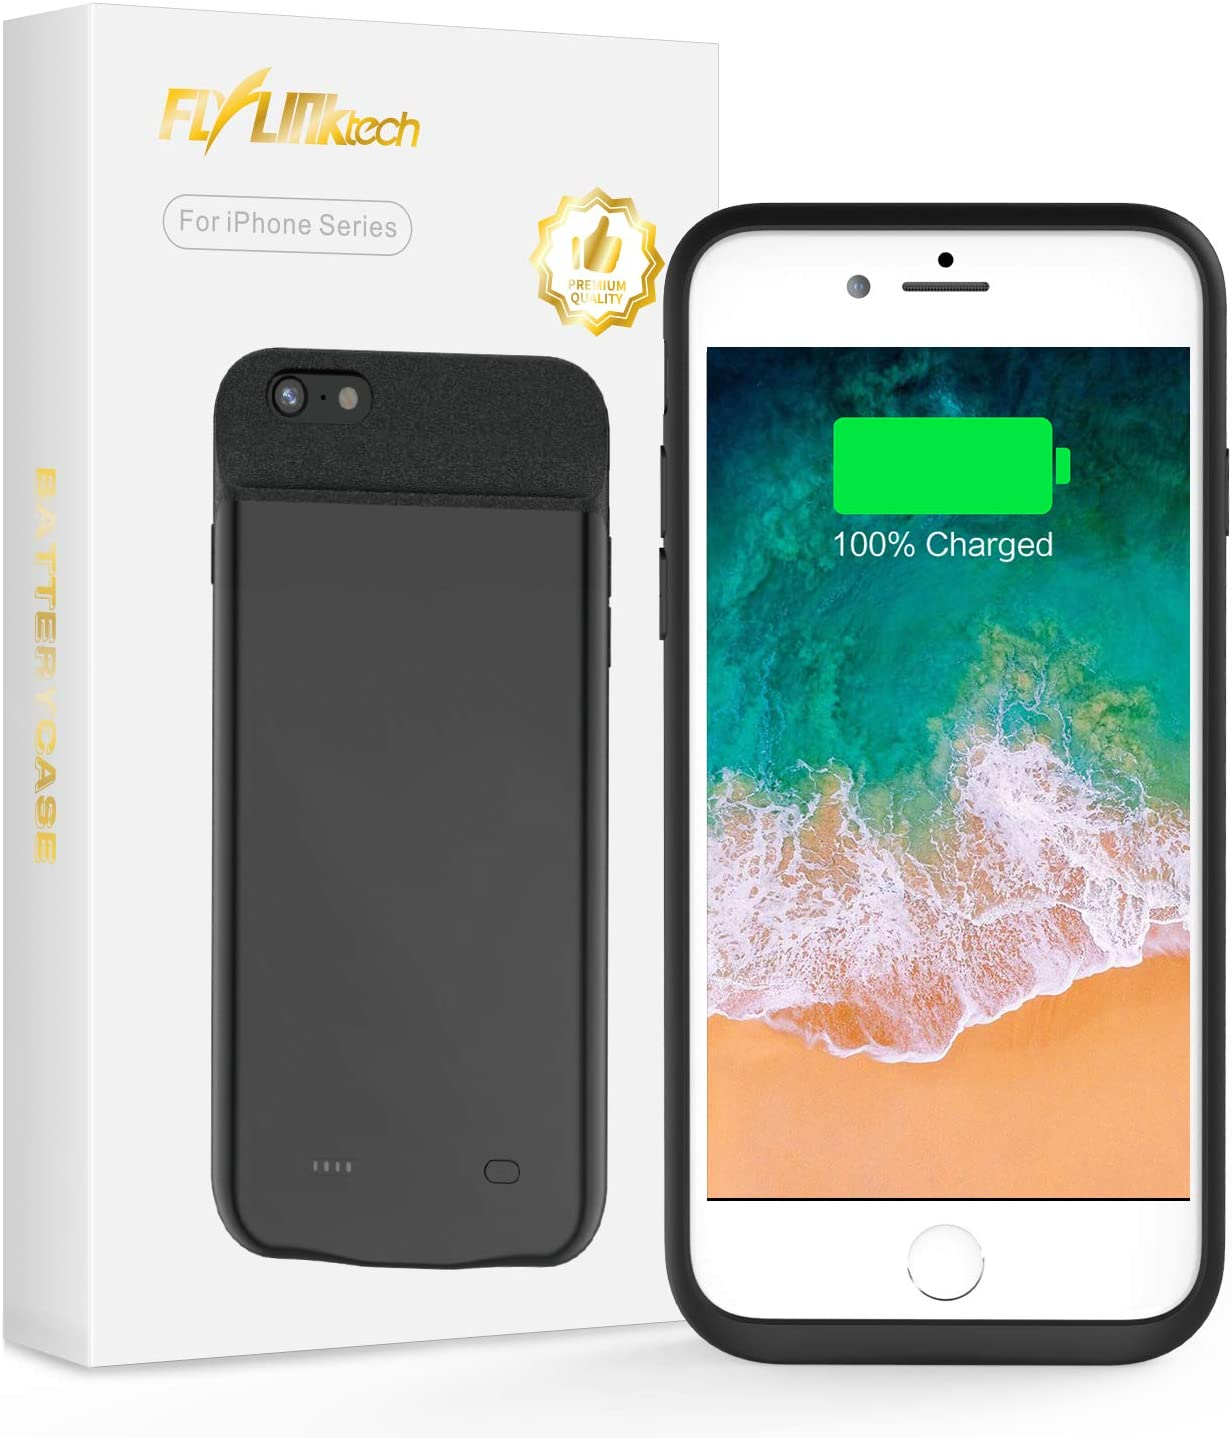 FLYLINKTECH for iPhone 6/6s/7/8 Battery Case, 6500mAh Portable Protective Charging Case Extended Rechargeable Battery Pack Charger Case (4.7 inch, Black)